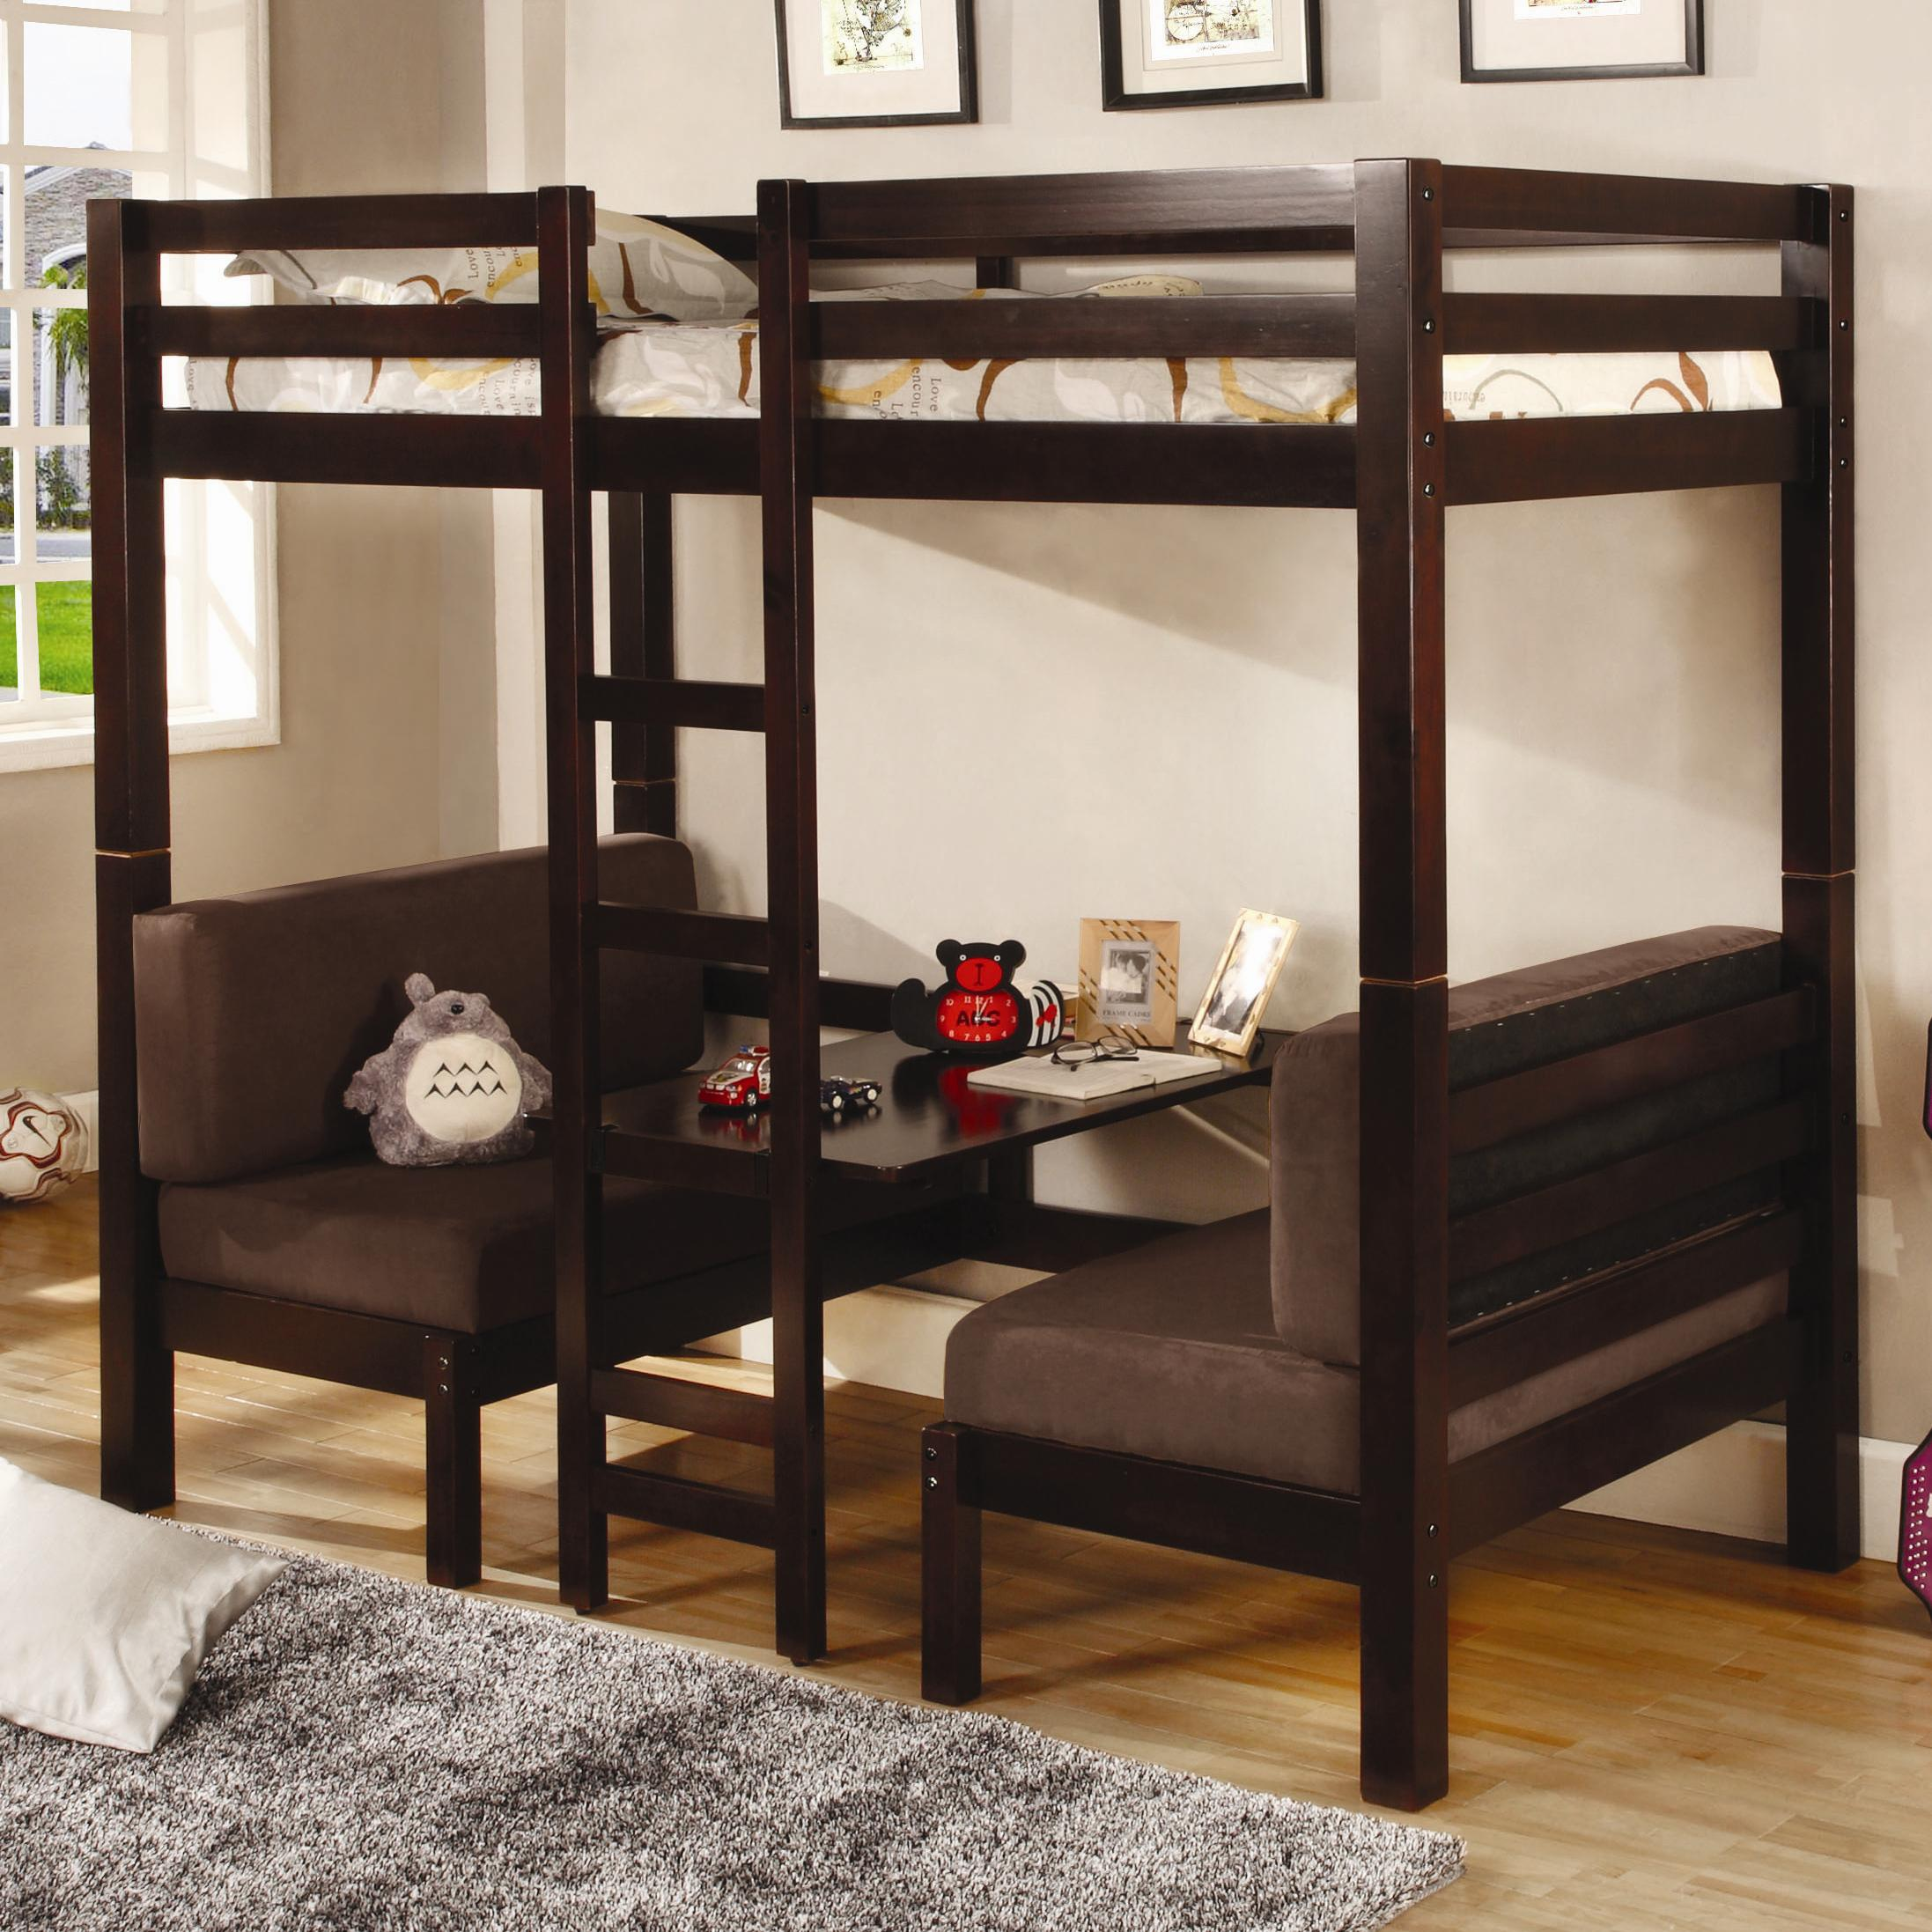 Coaster 460263 Twin Over Twin Convertible Loft Bed Cappuccino Finish